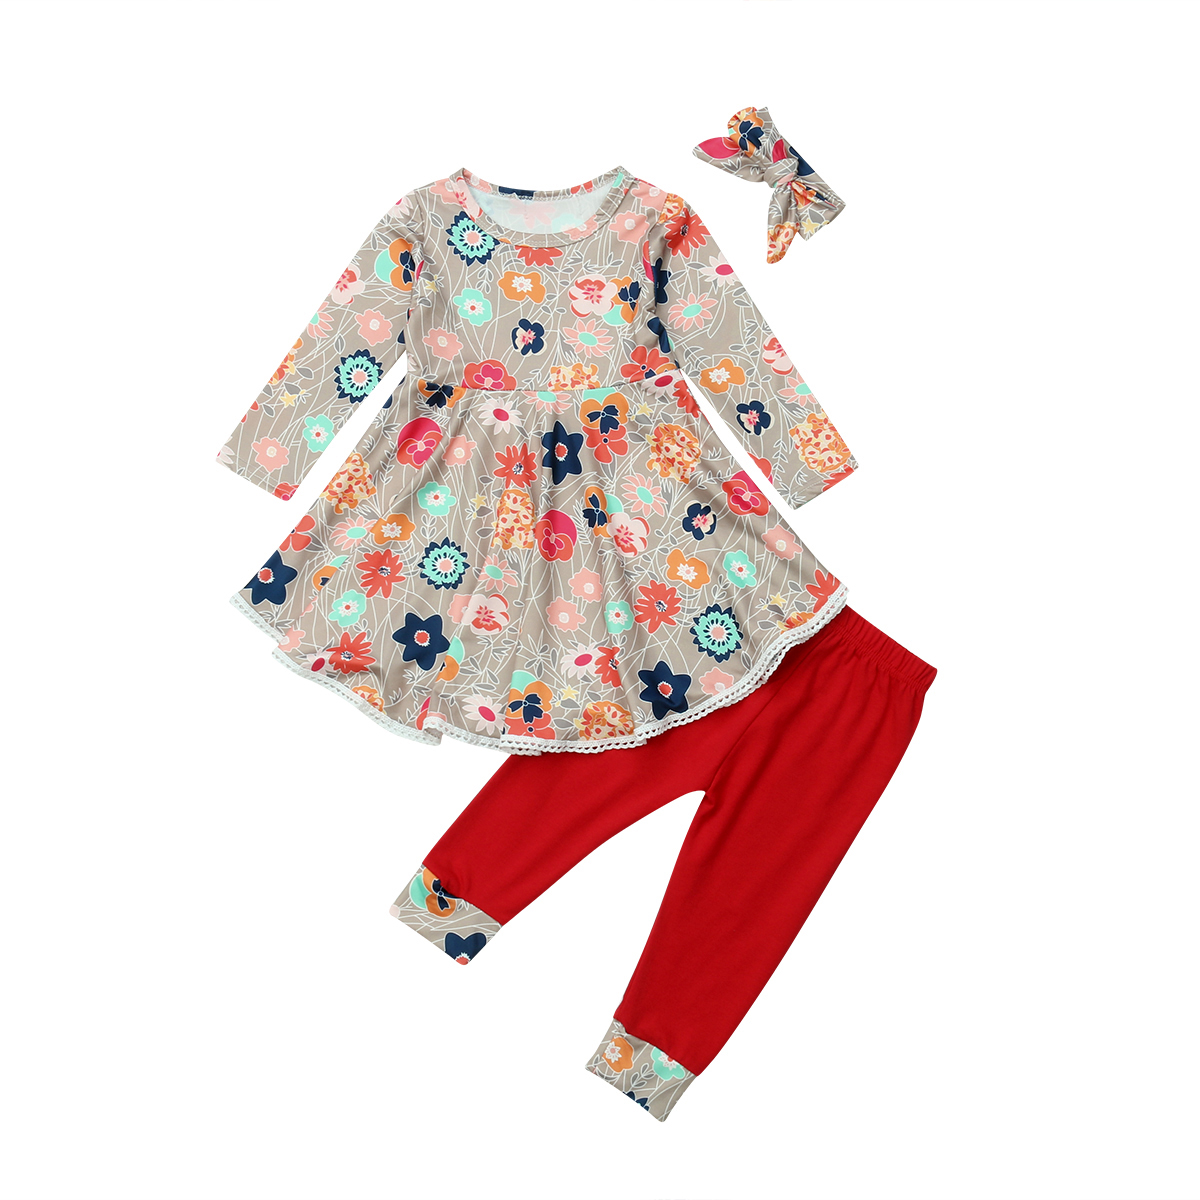 Christmas Toddler Kids Baby Girl Flower Tops Long Sleeve Dress Long Pants Headband Outfits Clothes Set 2019 in Clothing Sets from Mother Kids